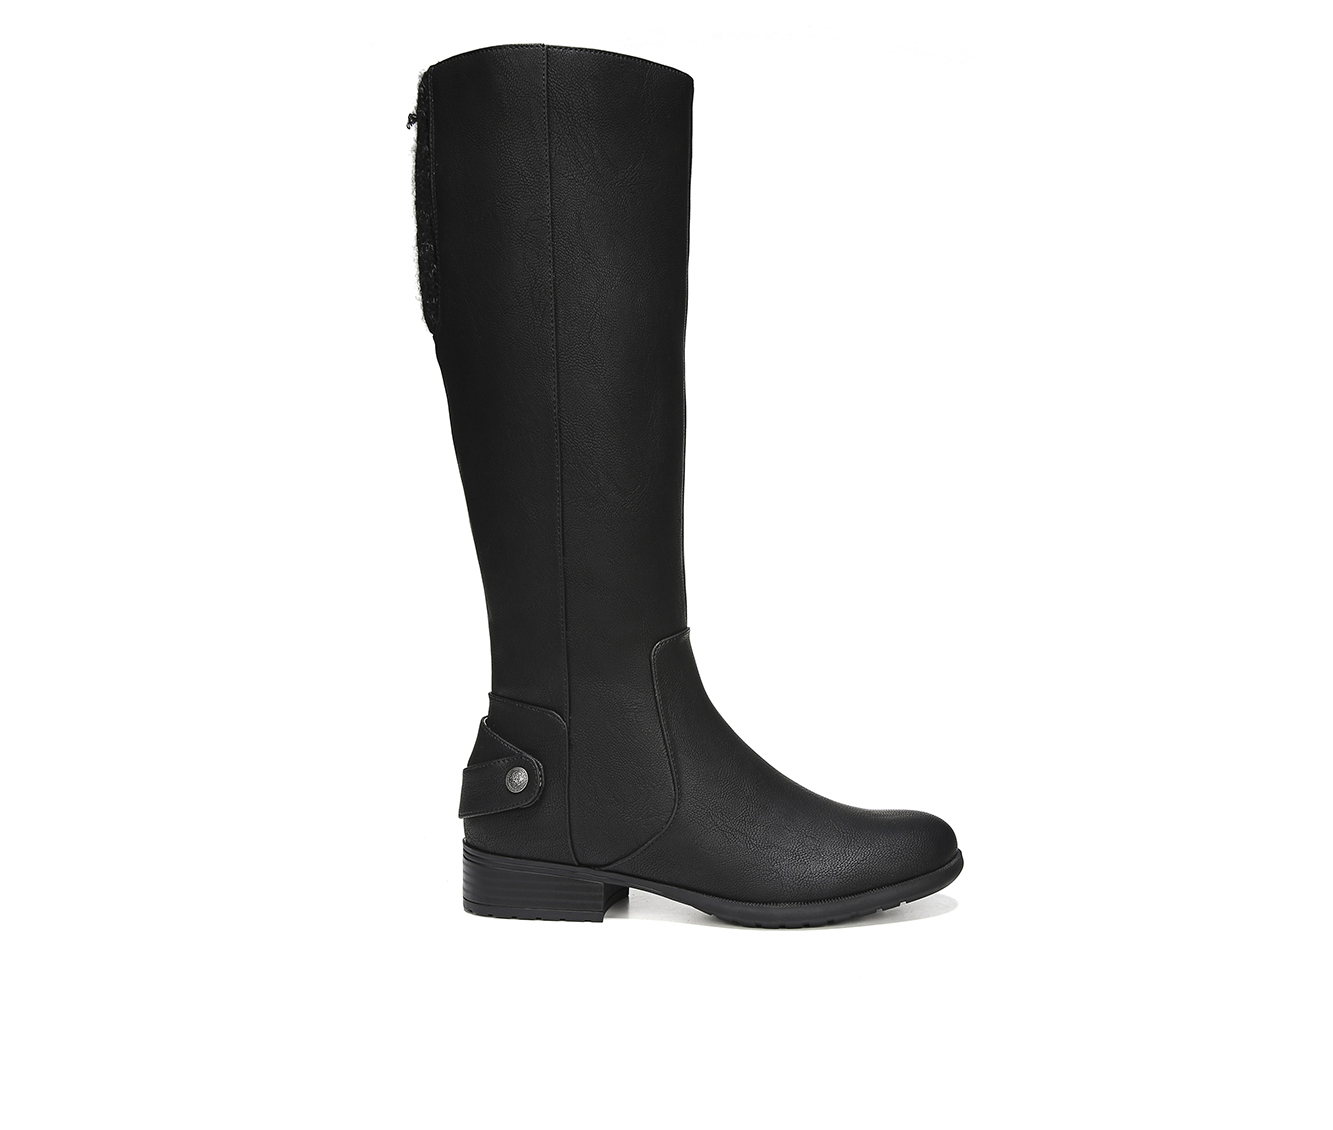 LifeStride X Amy Women's Boot (Black Faux Leather)